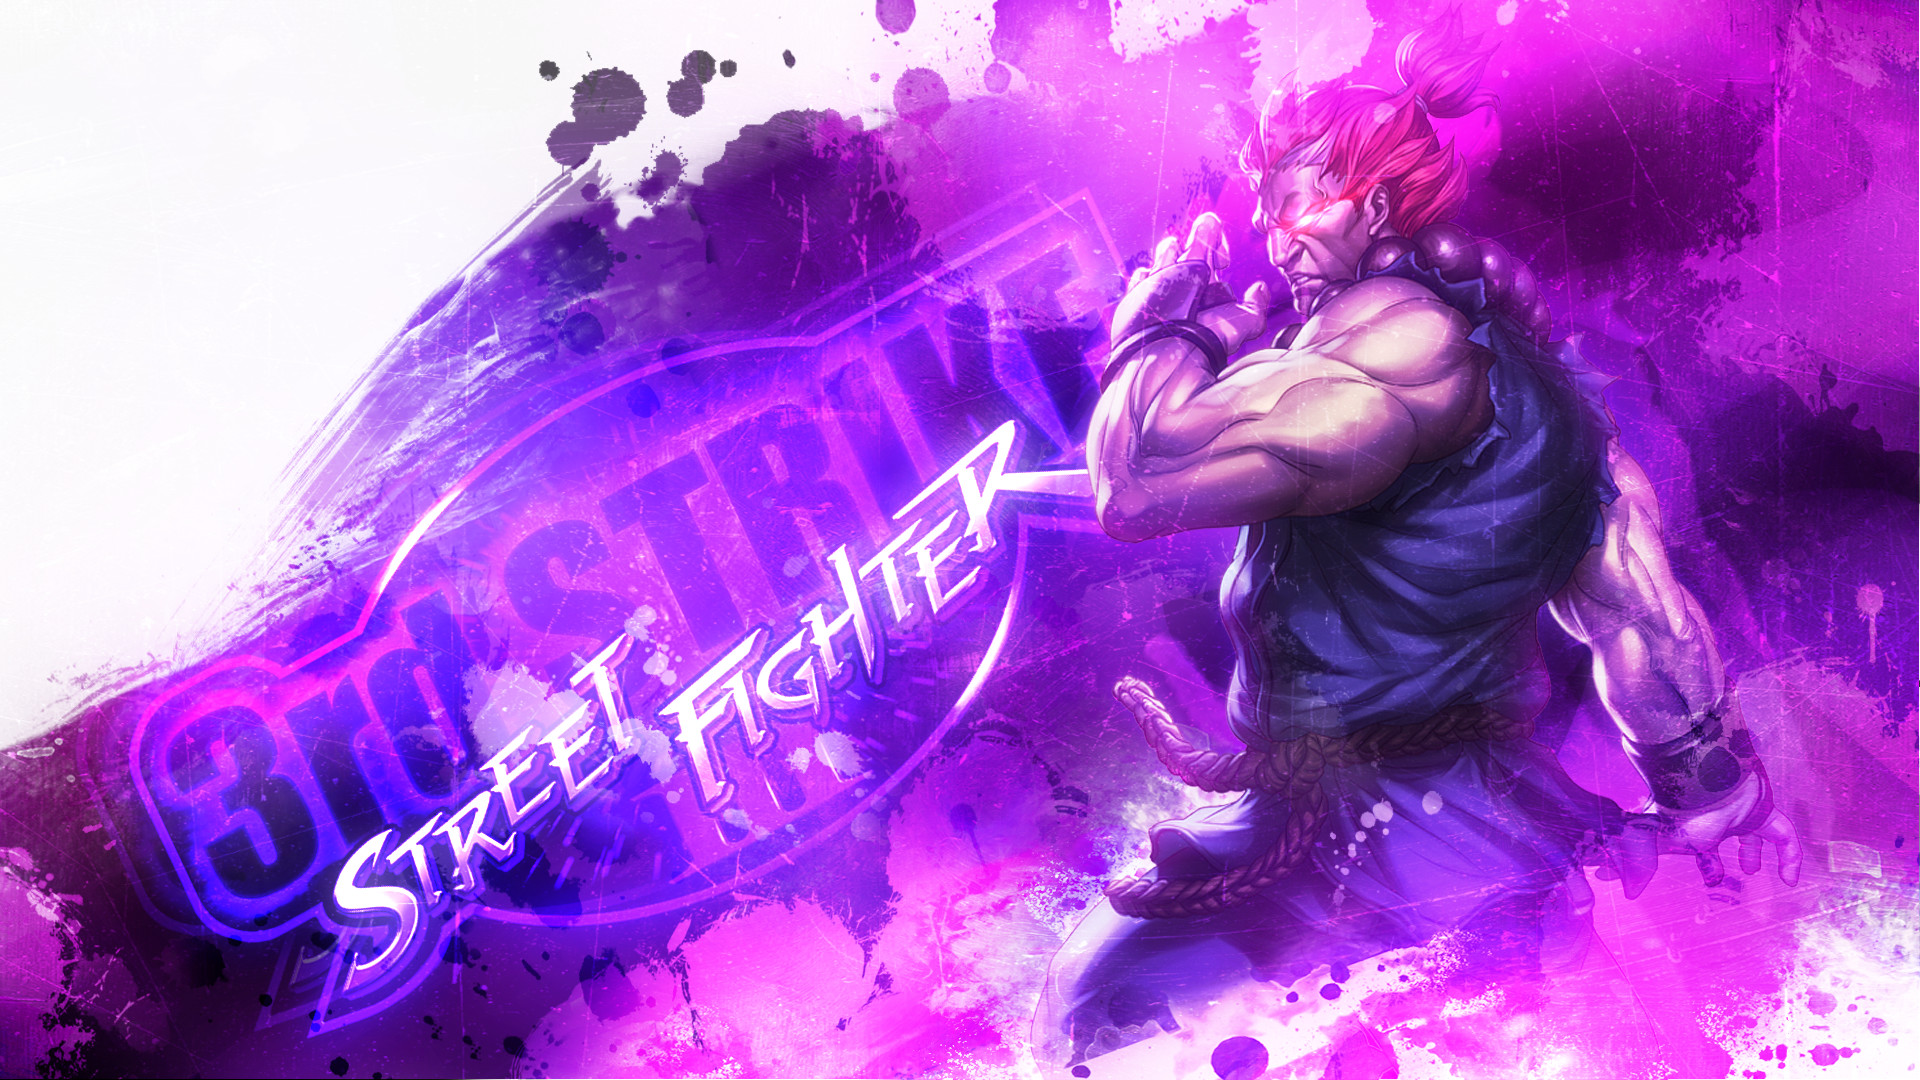 1920x1080 Street Fighter images Akuma HD wallpaper and background photos